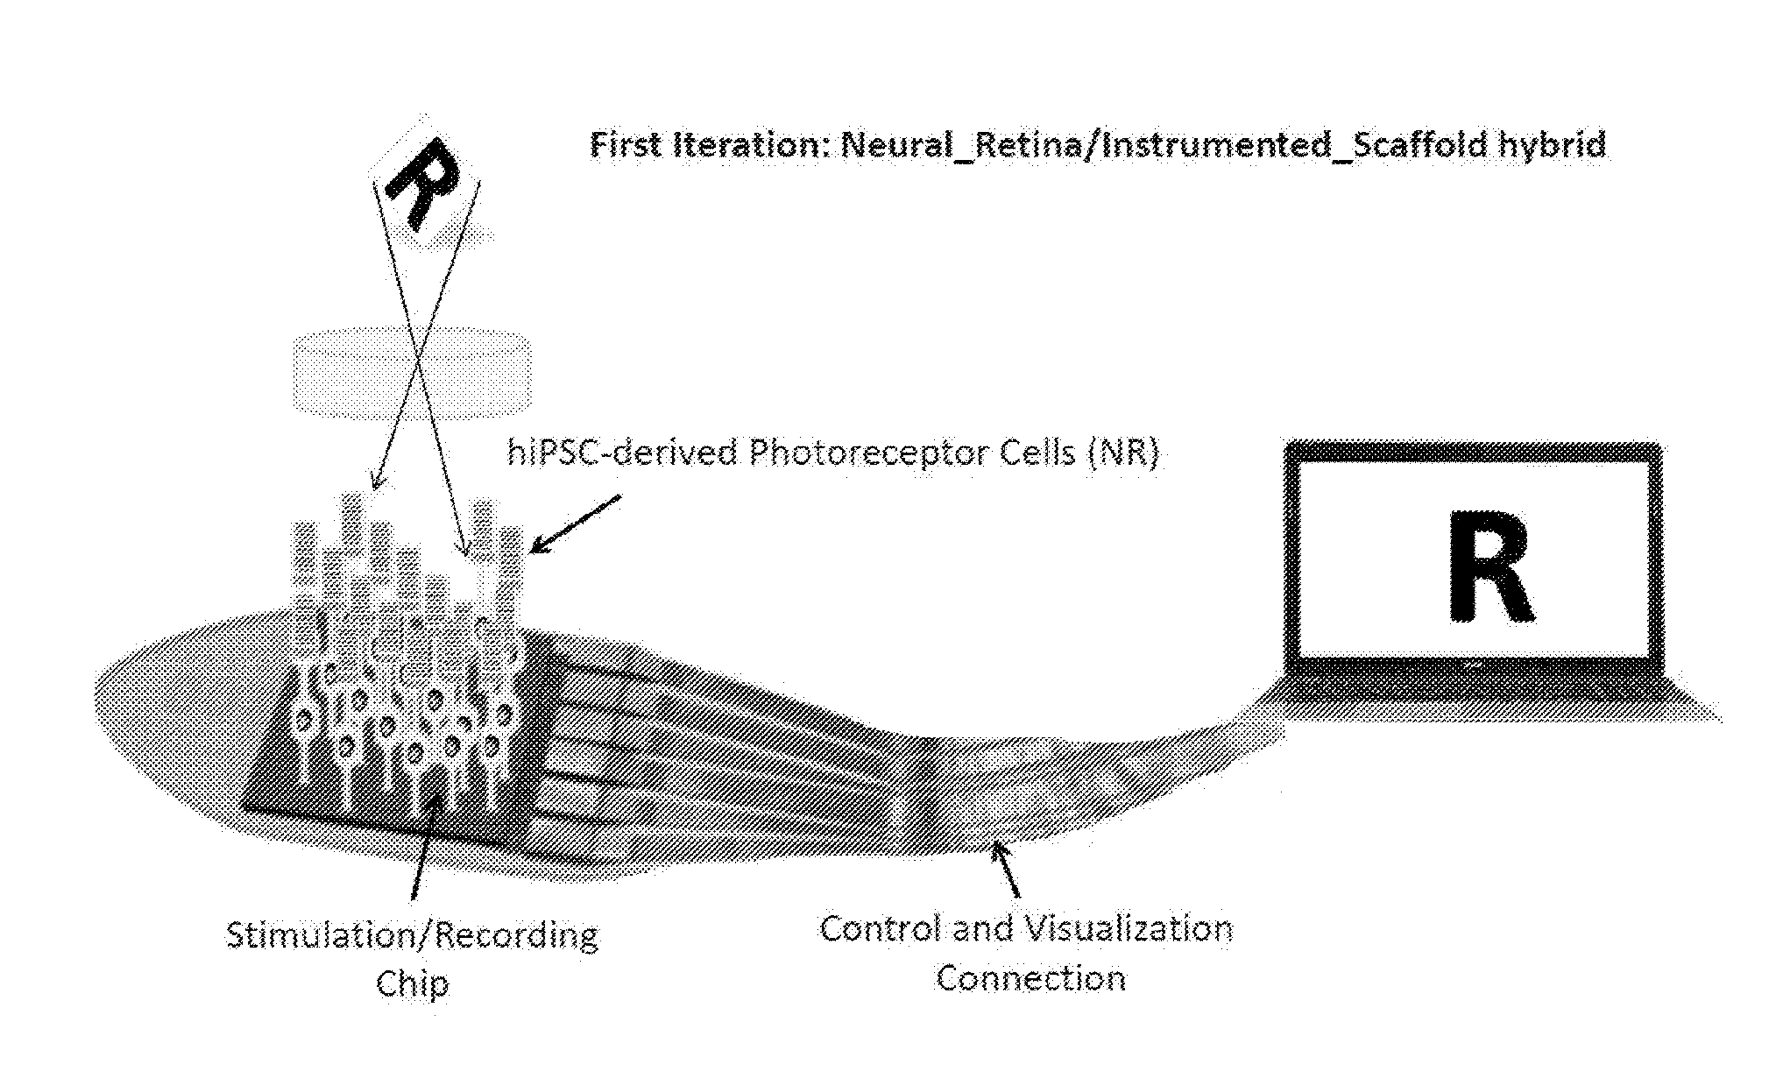 Filed Patent - Retina Regeneration with a Tissue-and-Technology Prosthesis